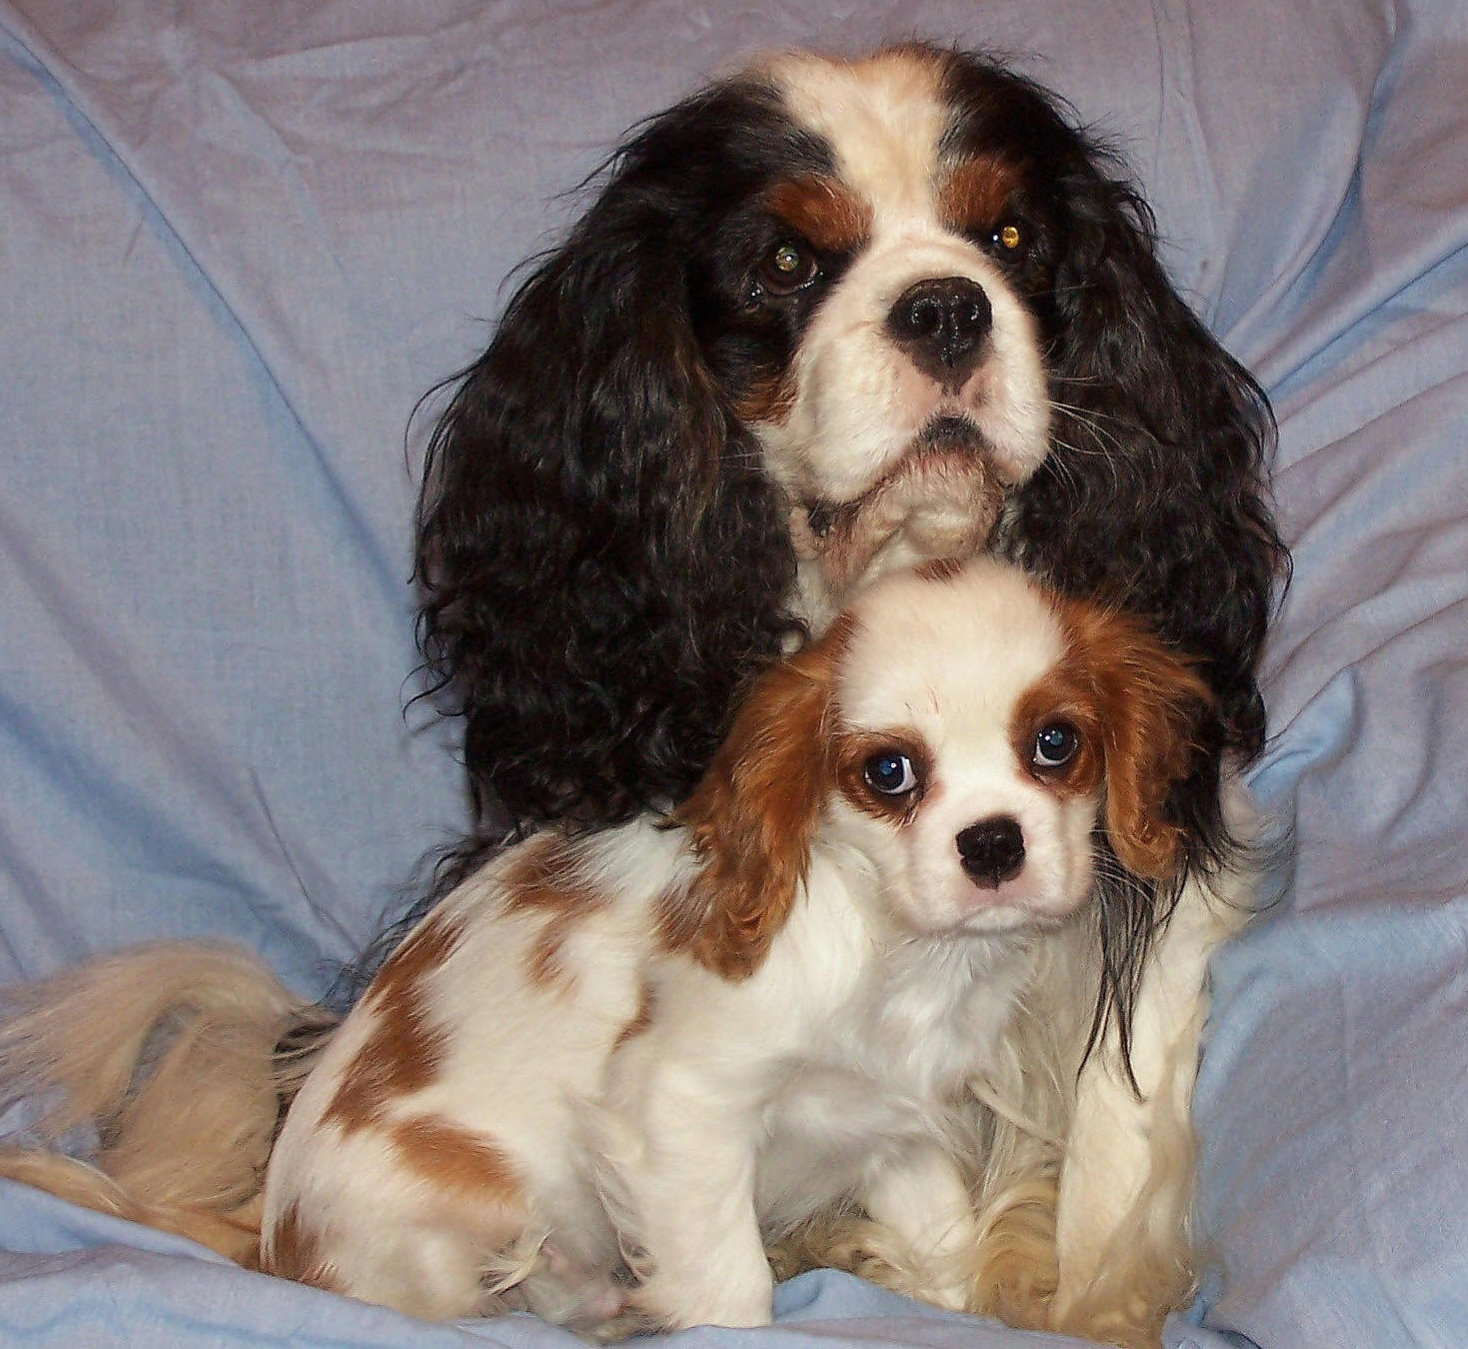 King Charles Spaniel with her baby wallpaper